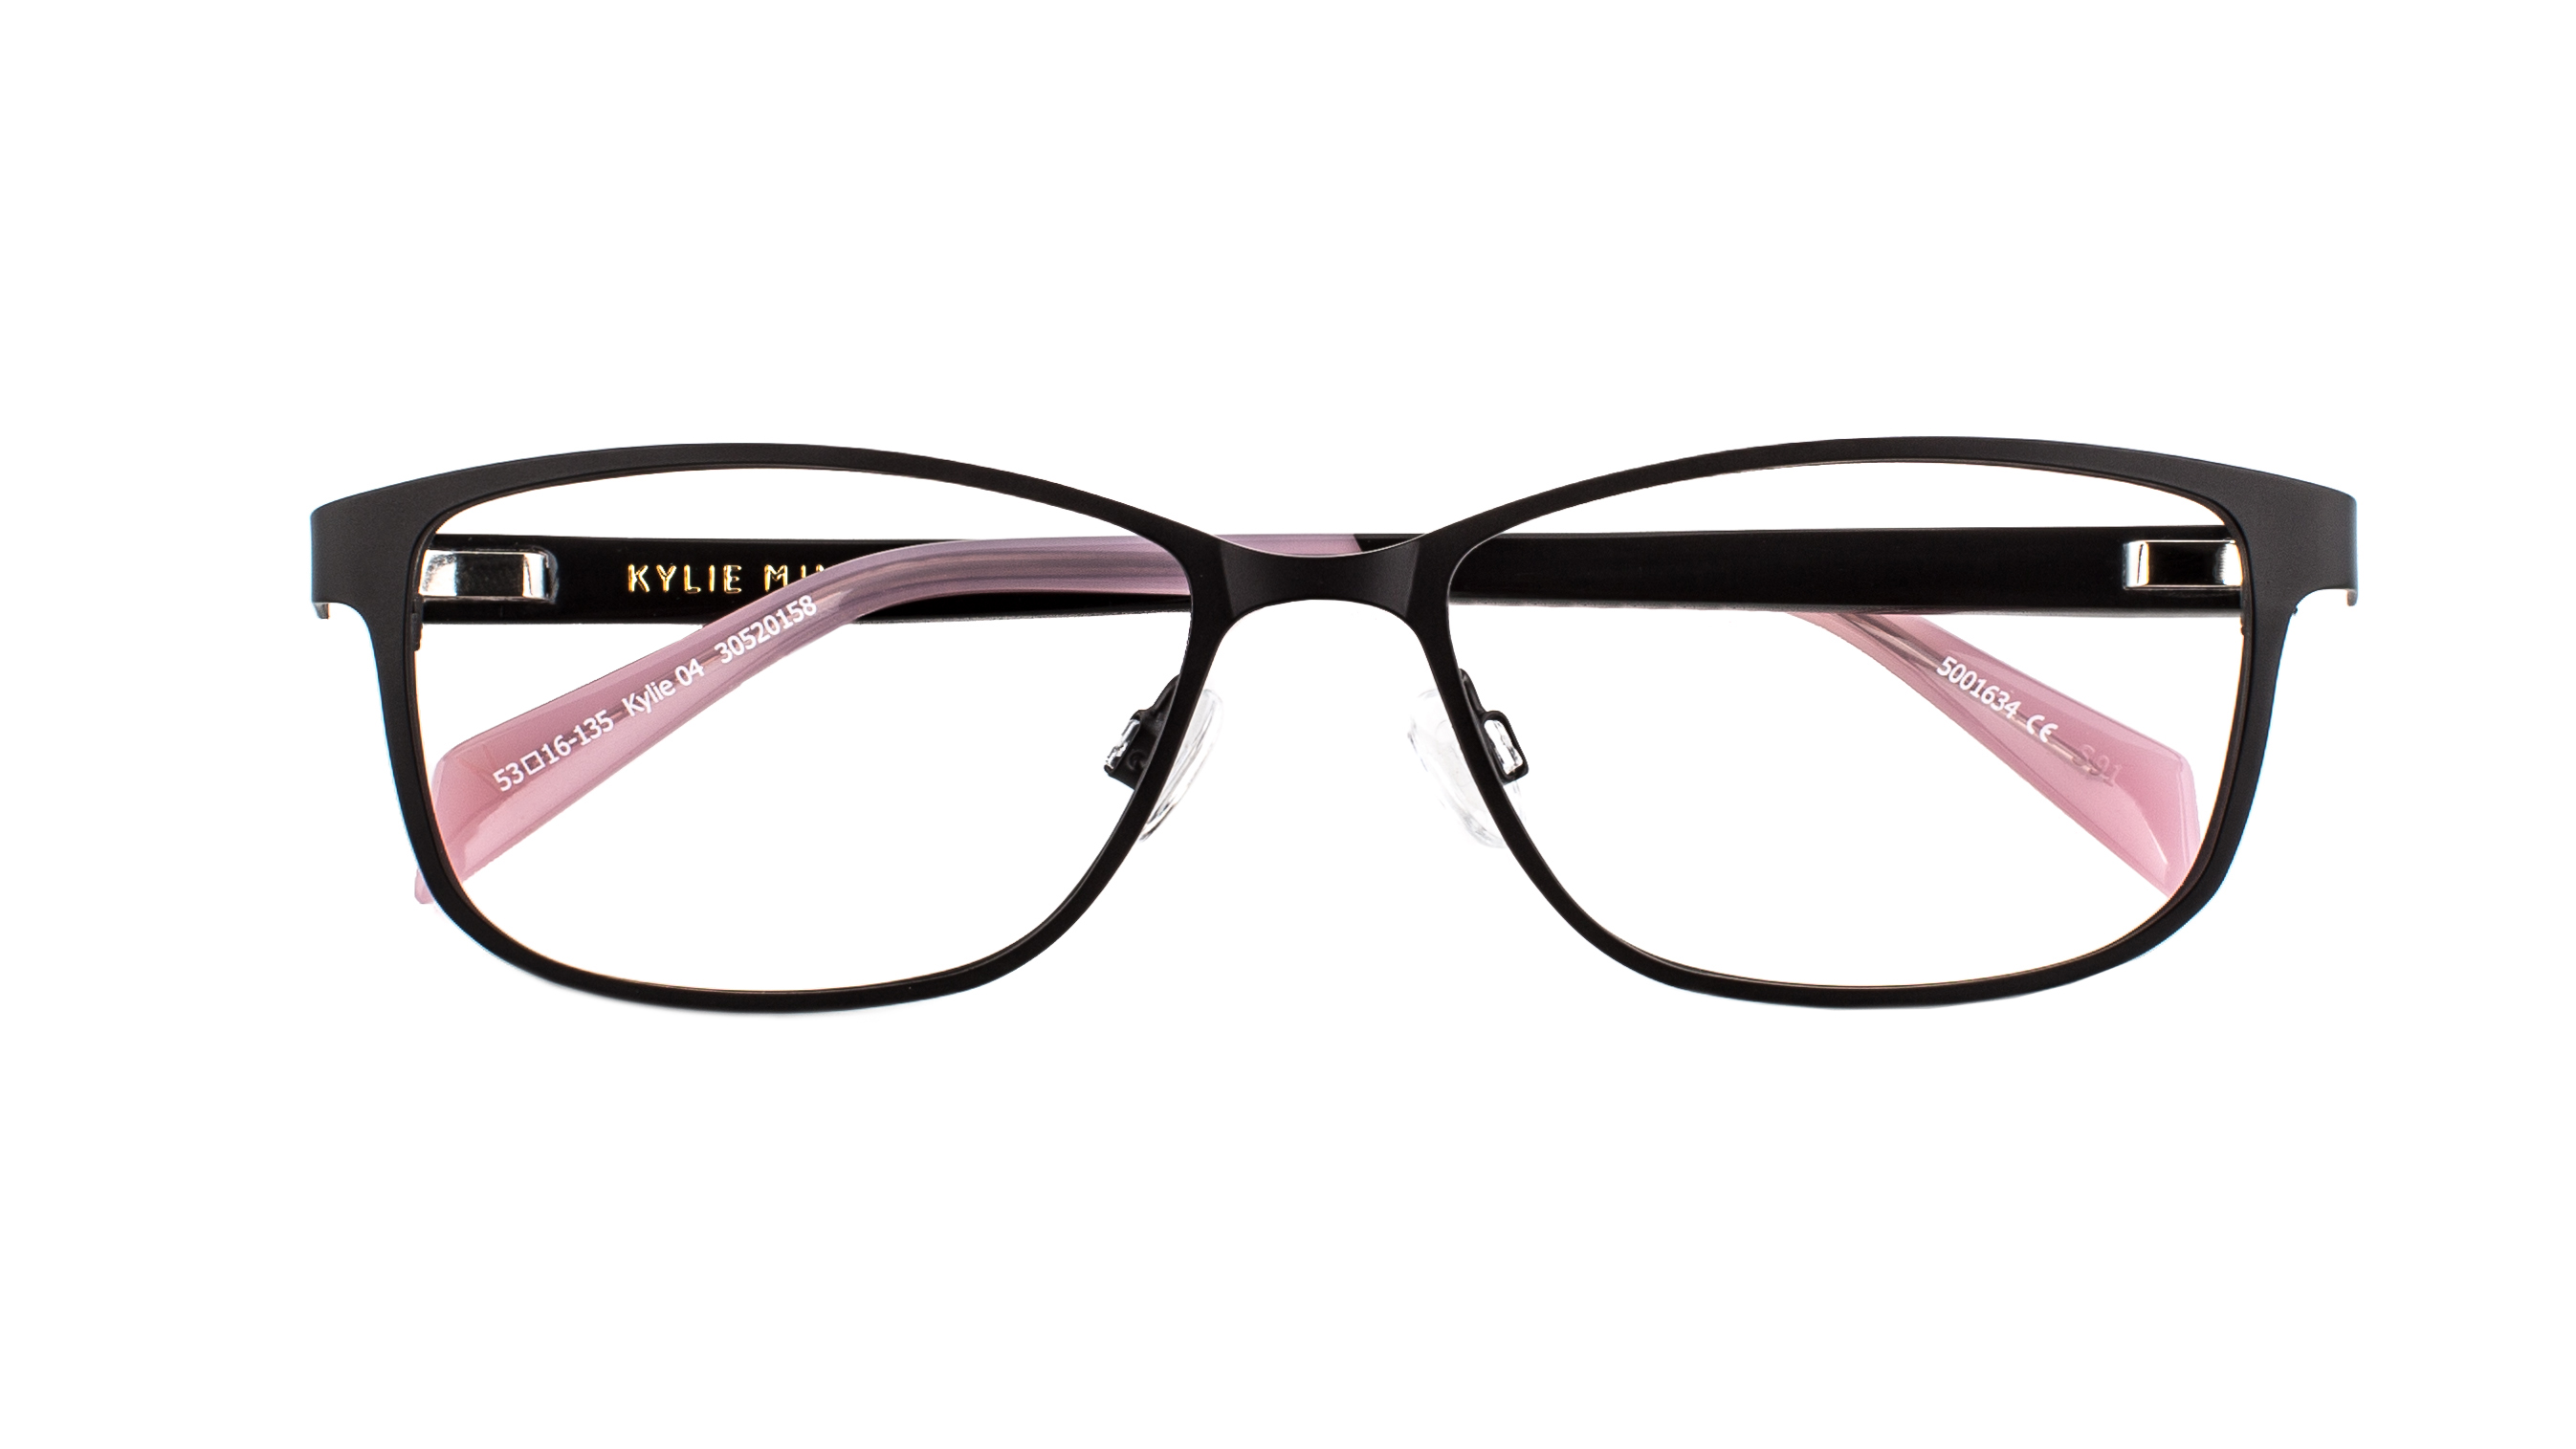 Kylie Minogue Eyewear_Kylie 04_SKU 30520158_RRP 2 pairs from $369